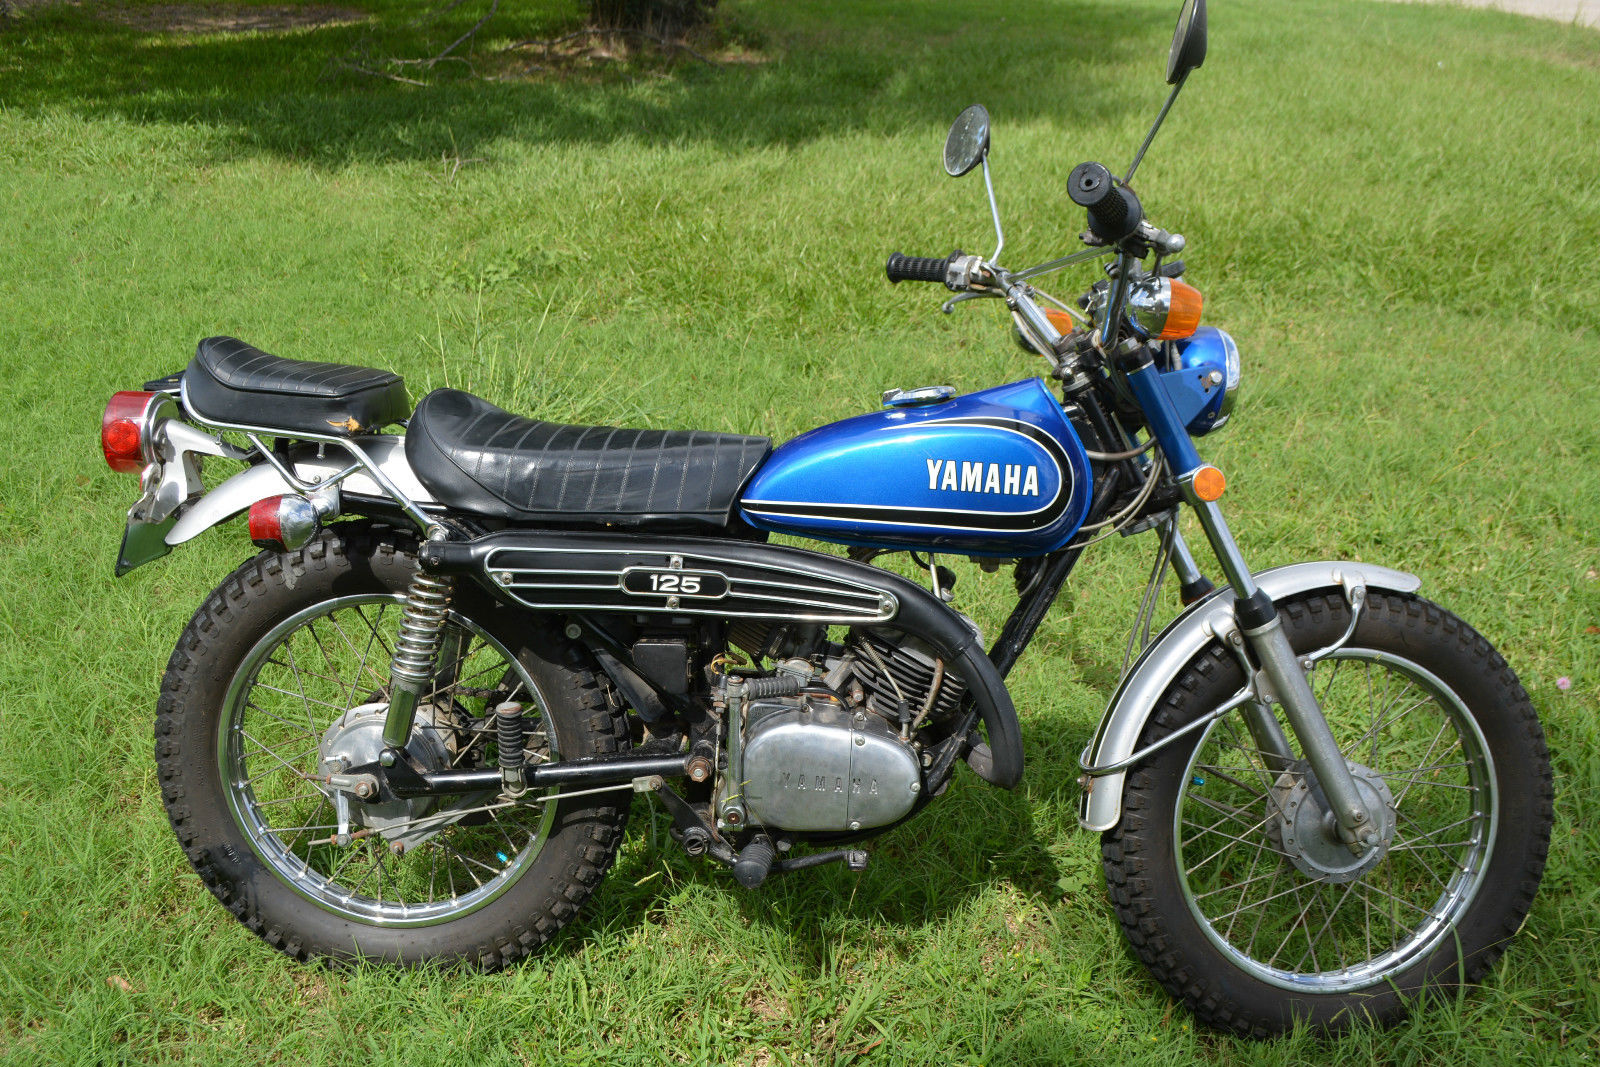 1973 yamaha 125 enduro vintage no reserve. Black Bedroom Furniture Sets. Home Design Ideas